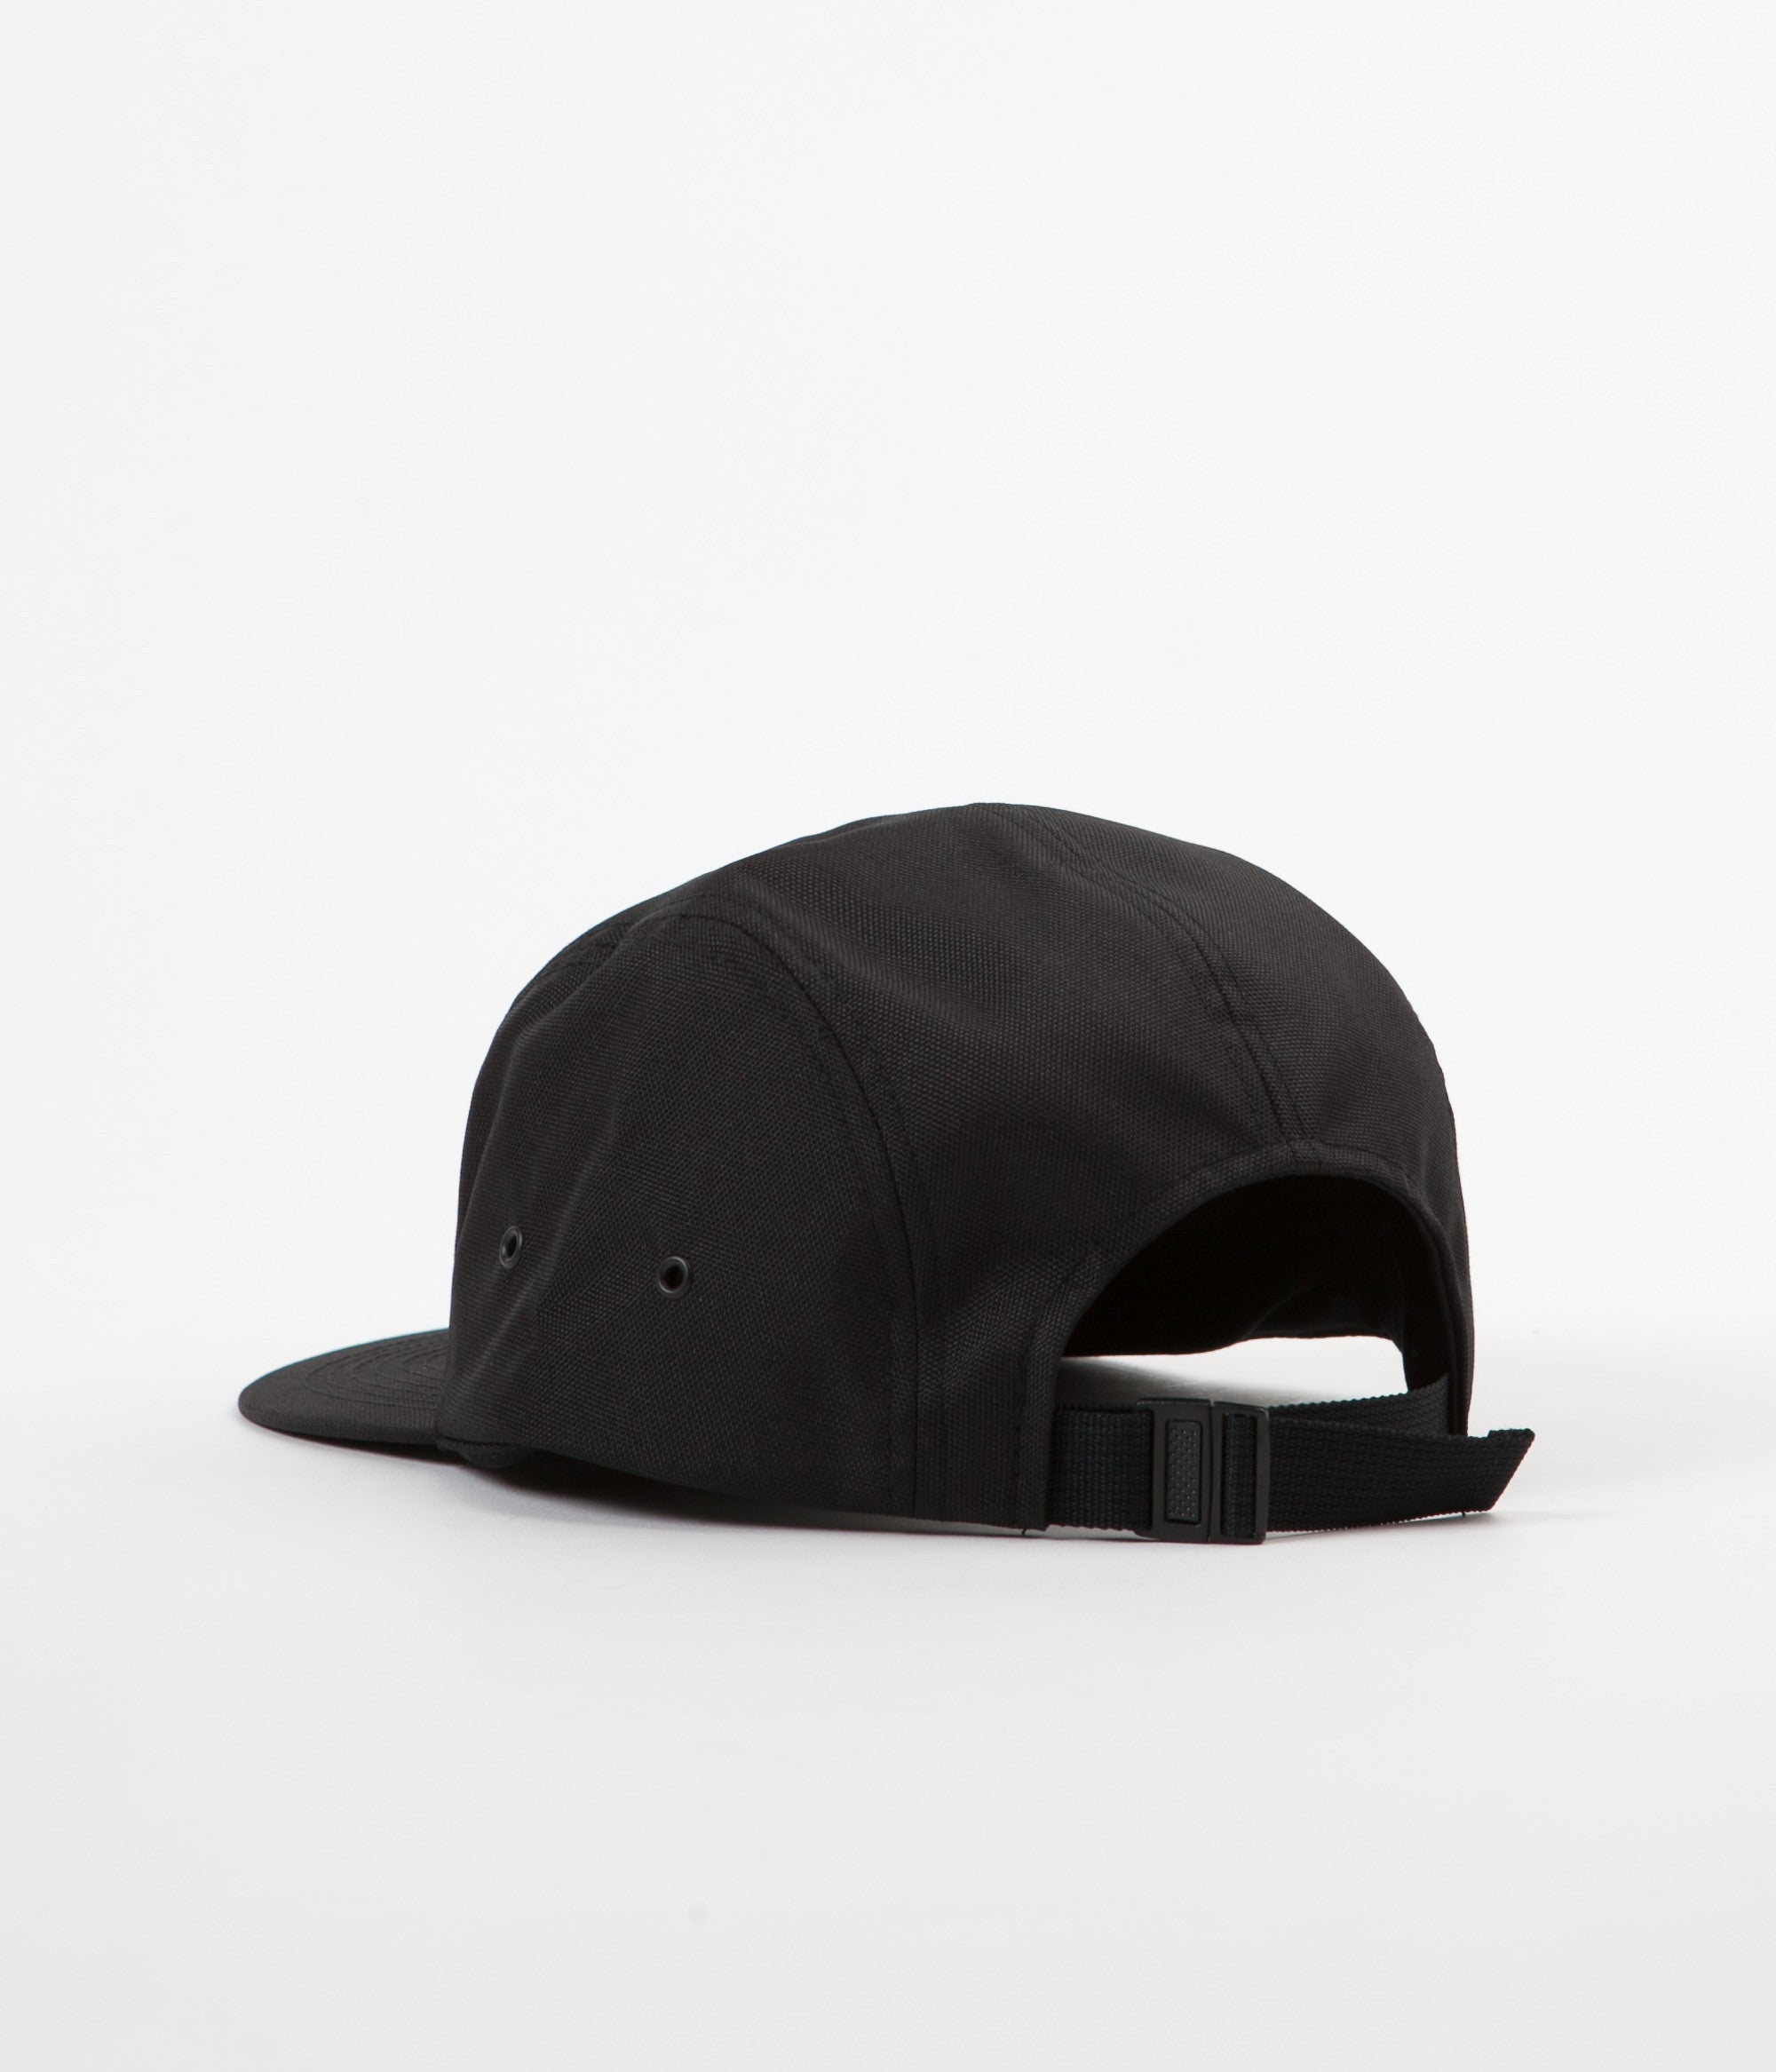 Carhartt Watch Cap - Black